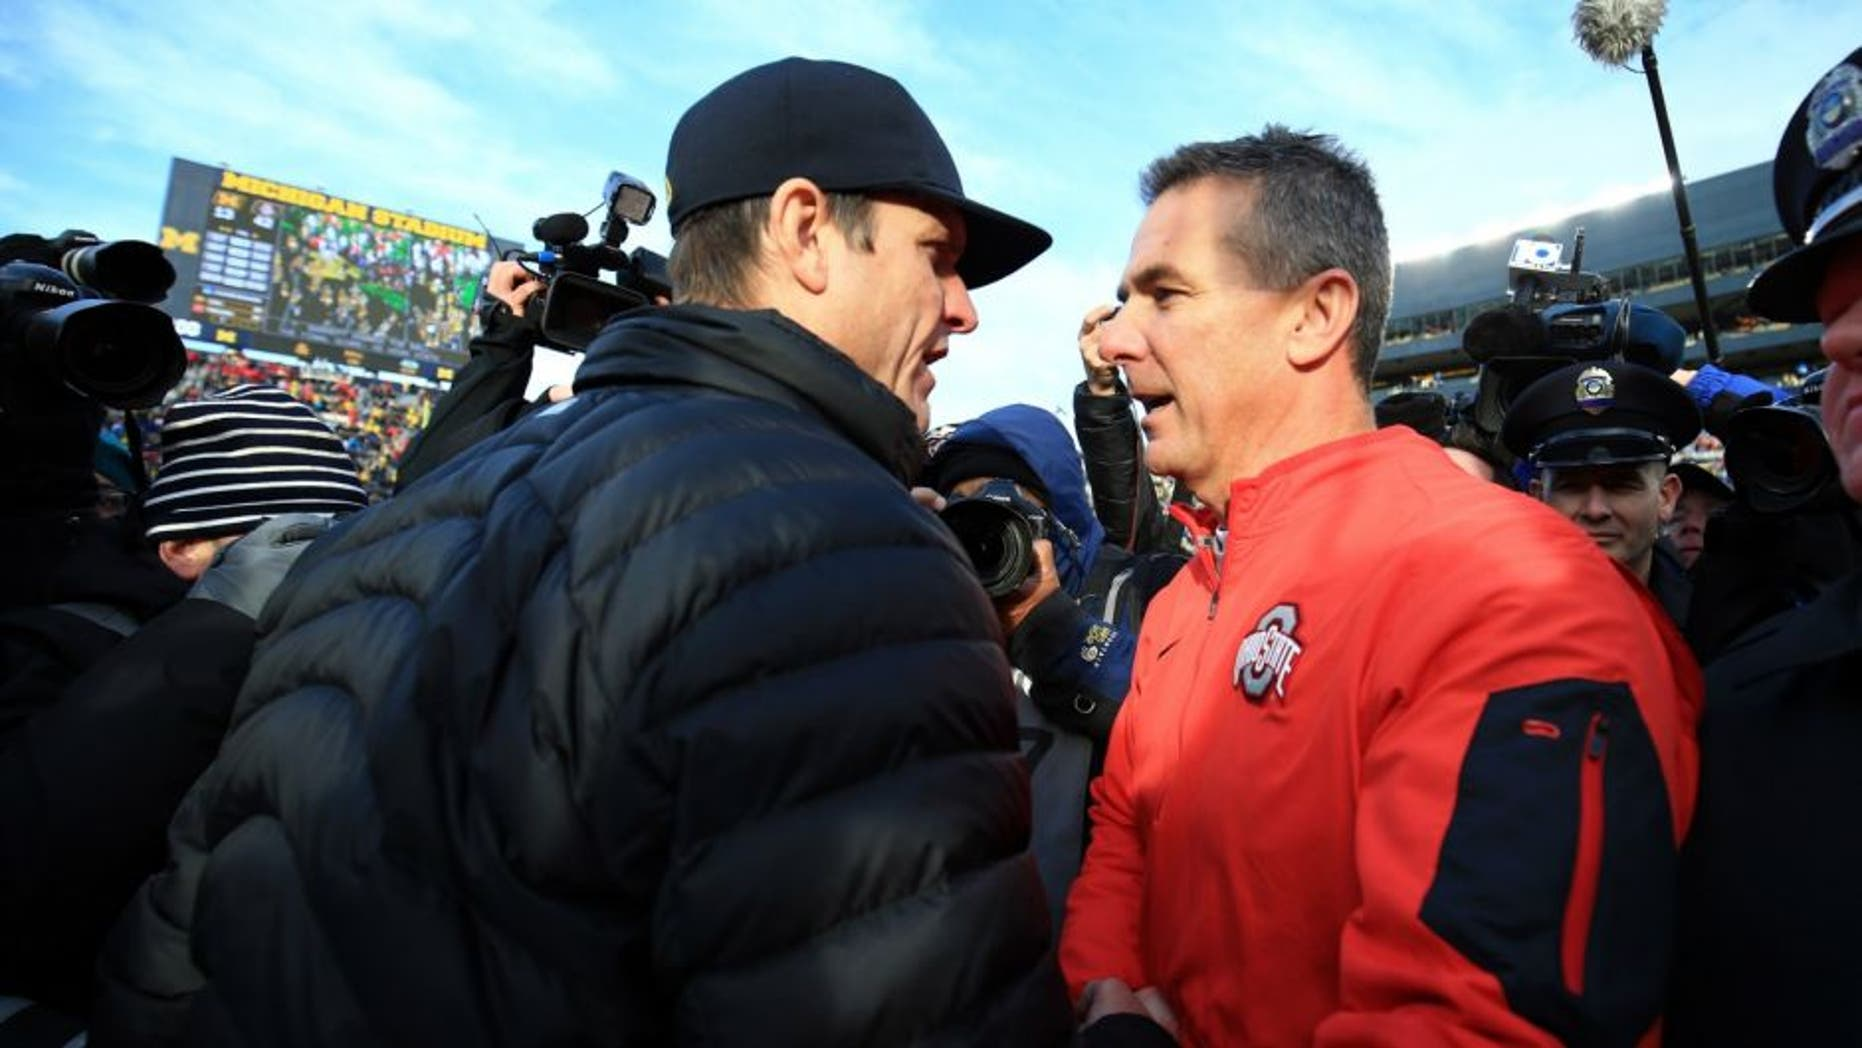 ANN ARBOR, MI - NOVEMBER 28: Head coach Urban Meyer of the Ohio State Buckeyes and head coach Jim Harbaugh of the Michigan Wolverines after the game against the Michigan Wolverines at Michigan Stadium on November 28, 2015 in Ann Arbor, Michigan. Ohio State defeated Michigan 42-13. (Photo by Andrew Weber/Getty Images) *** Local Caption *** Urban Meyer; Jim Harbaugh